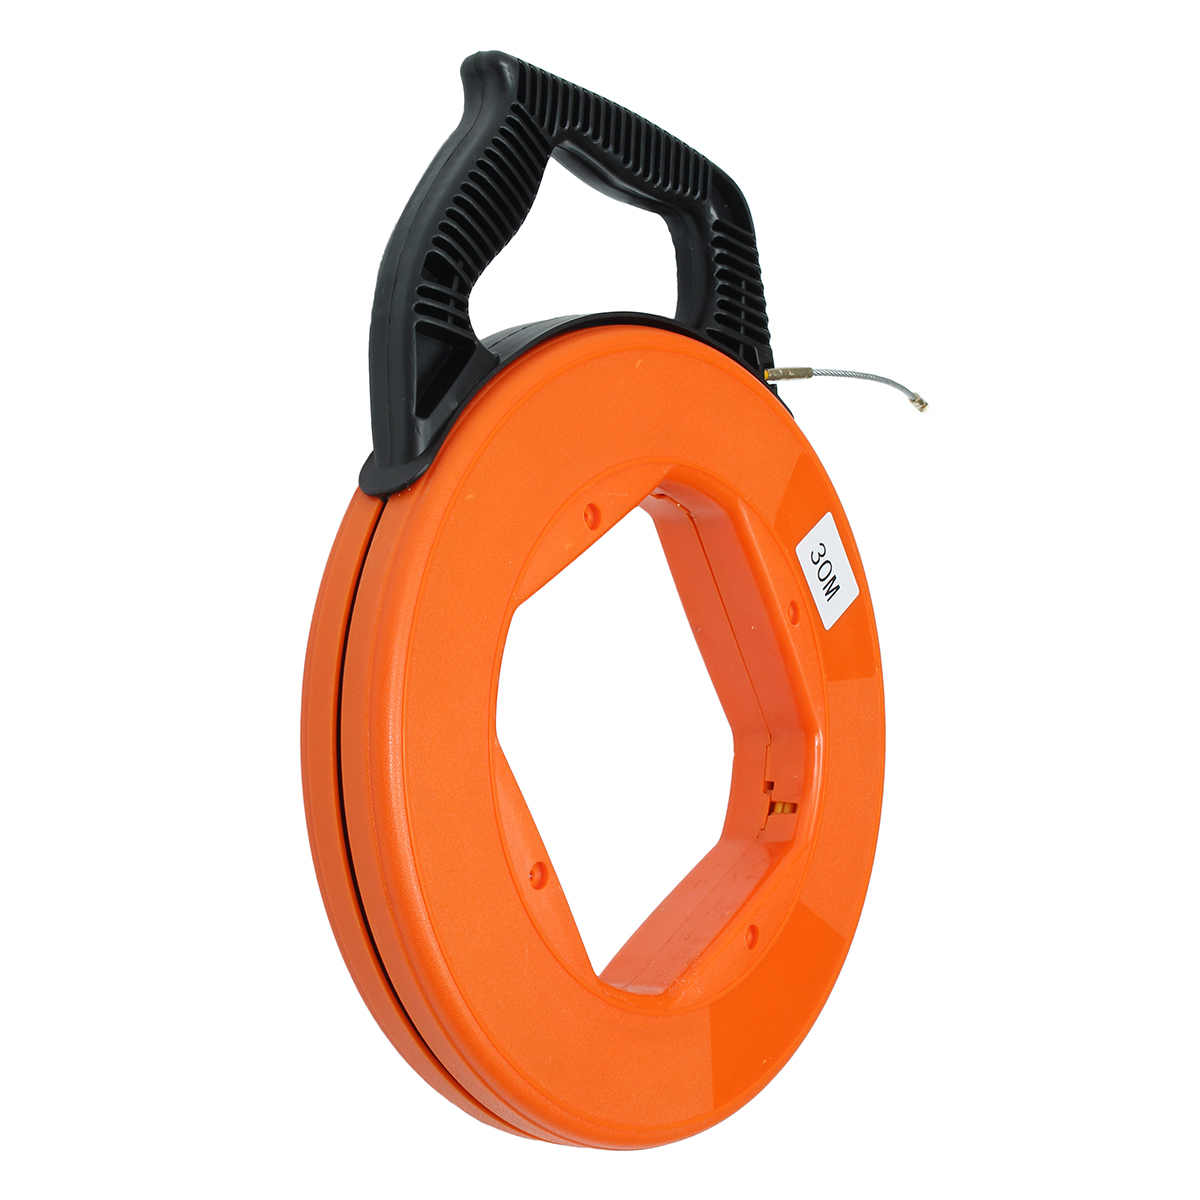 30M Fiberglass Fish Tape For Pulling Wire and Cable | Alexnld.com